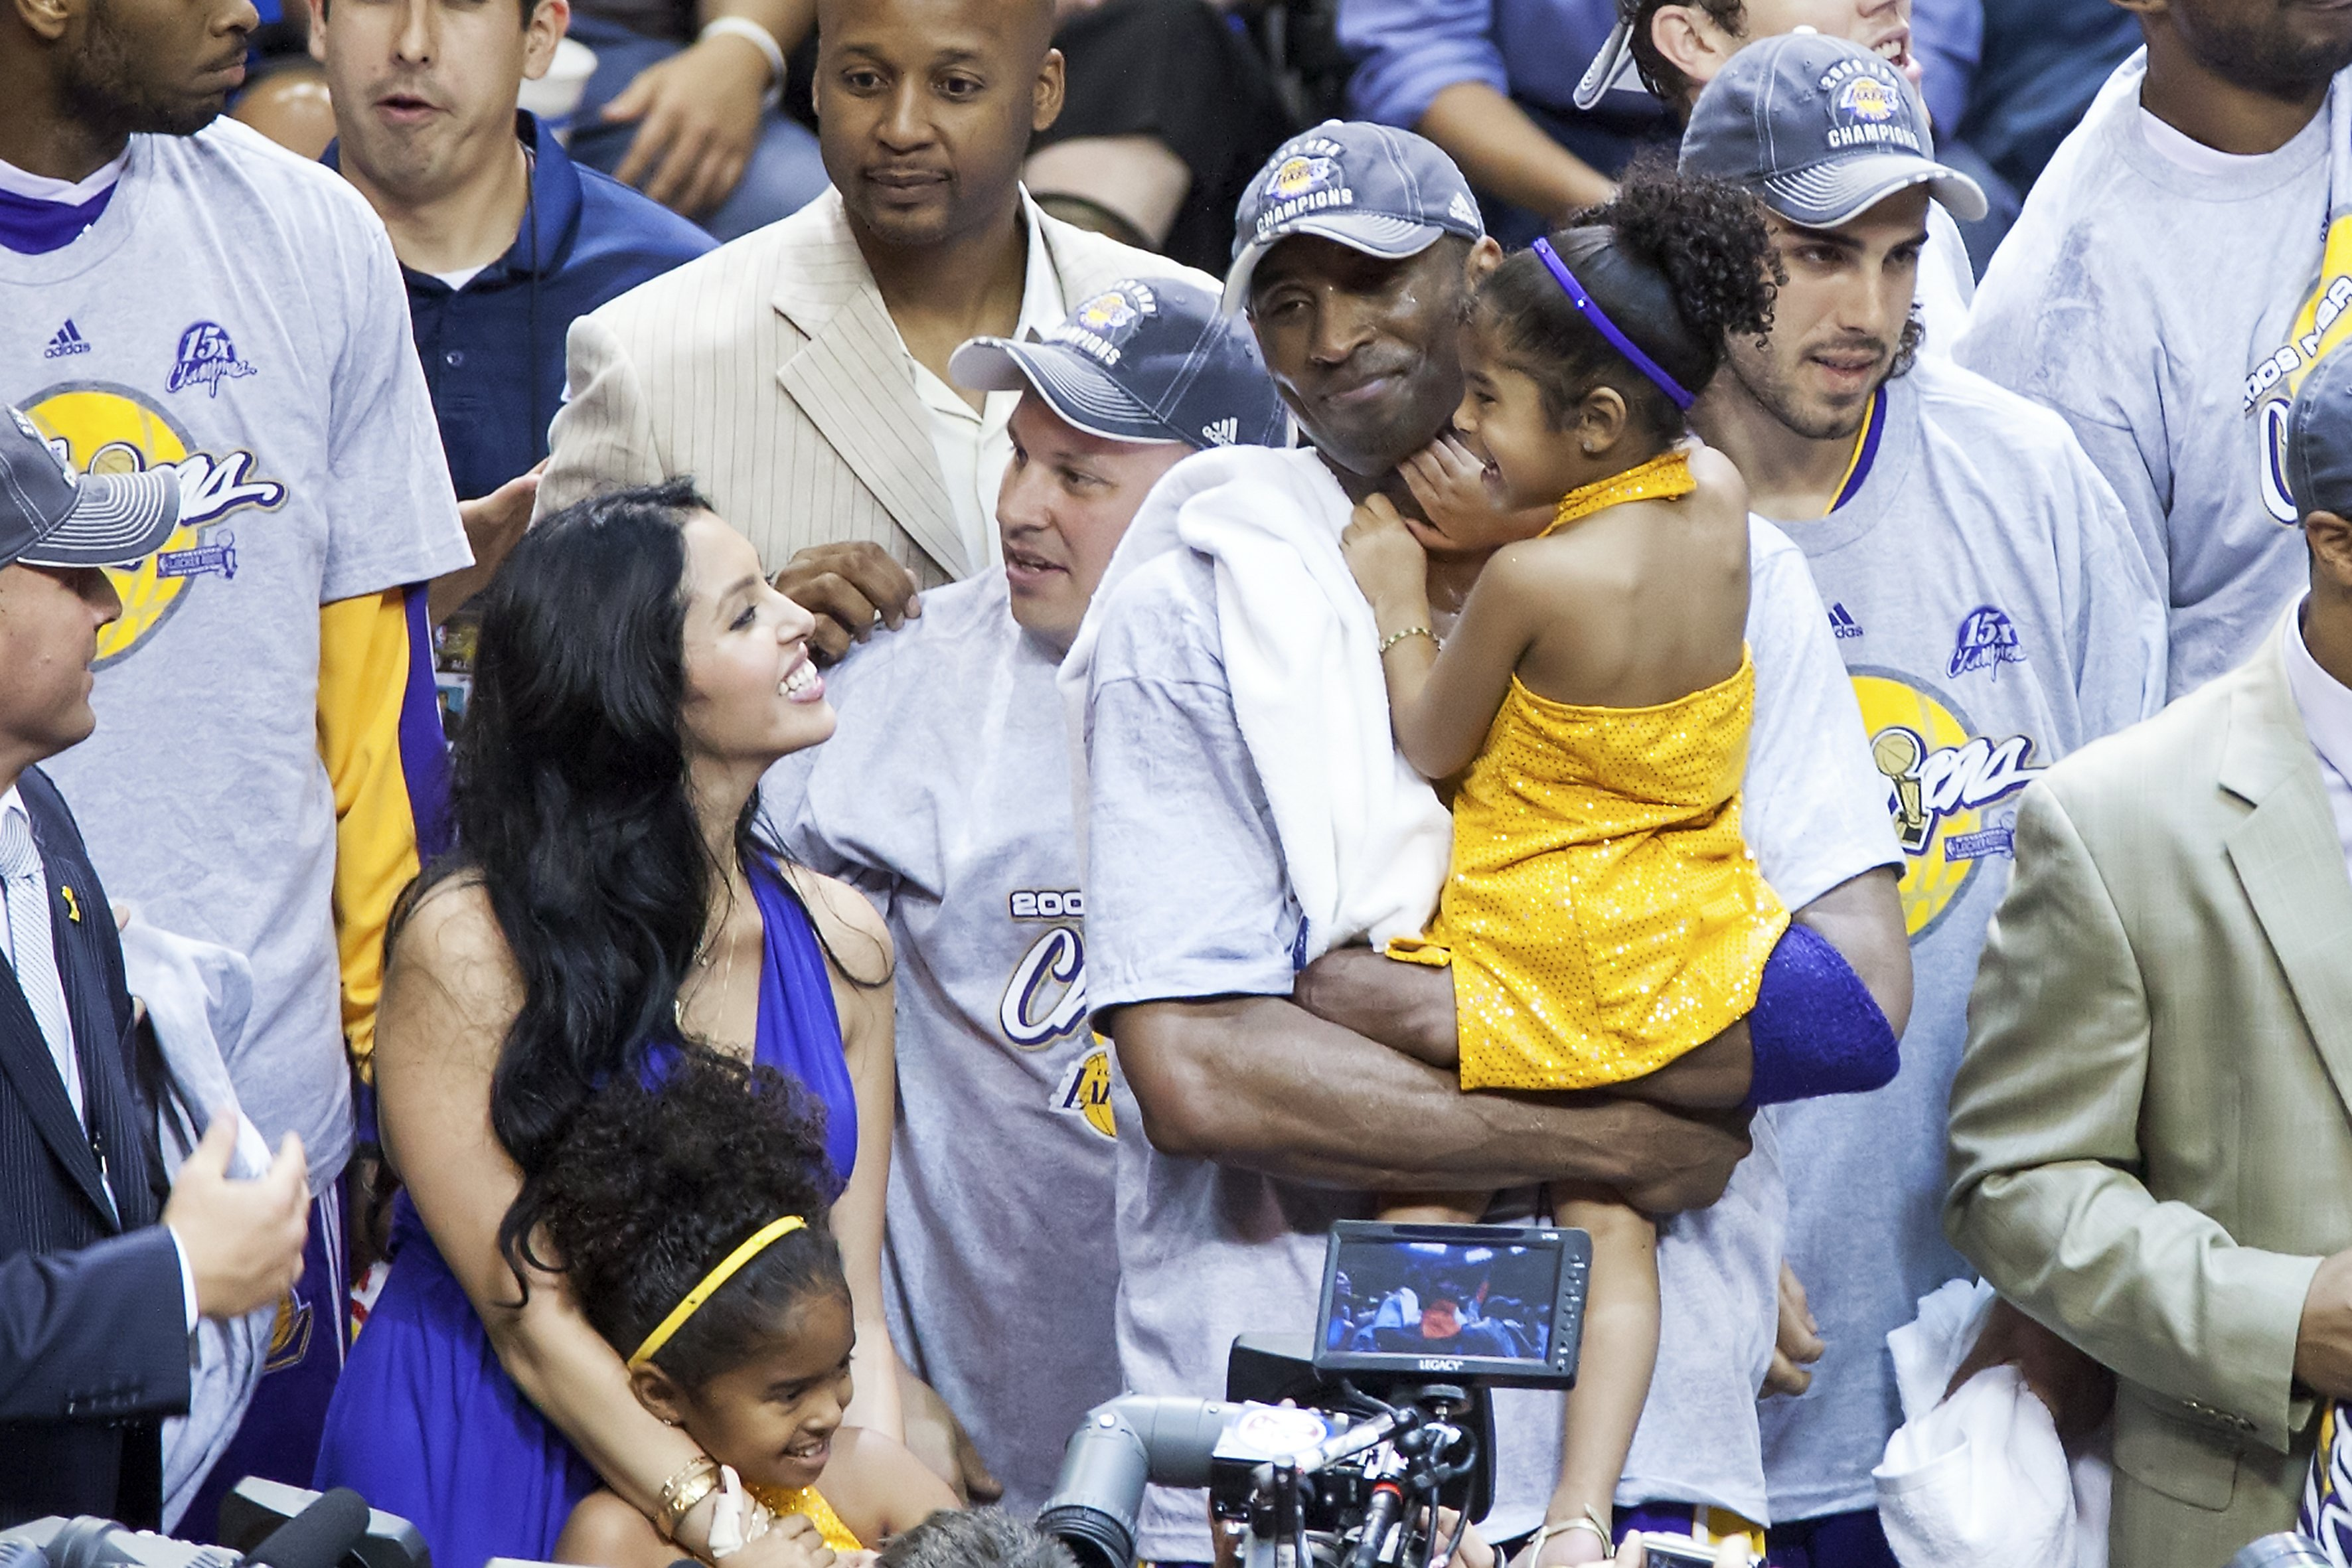 Image Source: Getty Images/The Bryant family at a Laker game